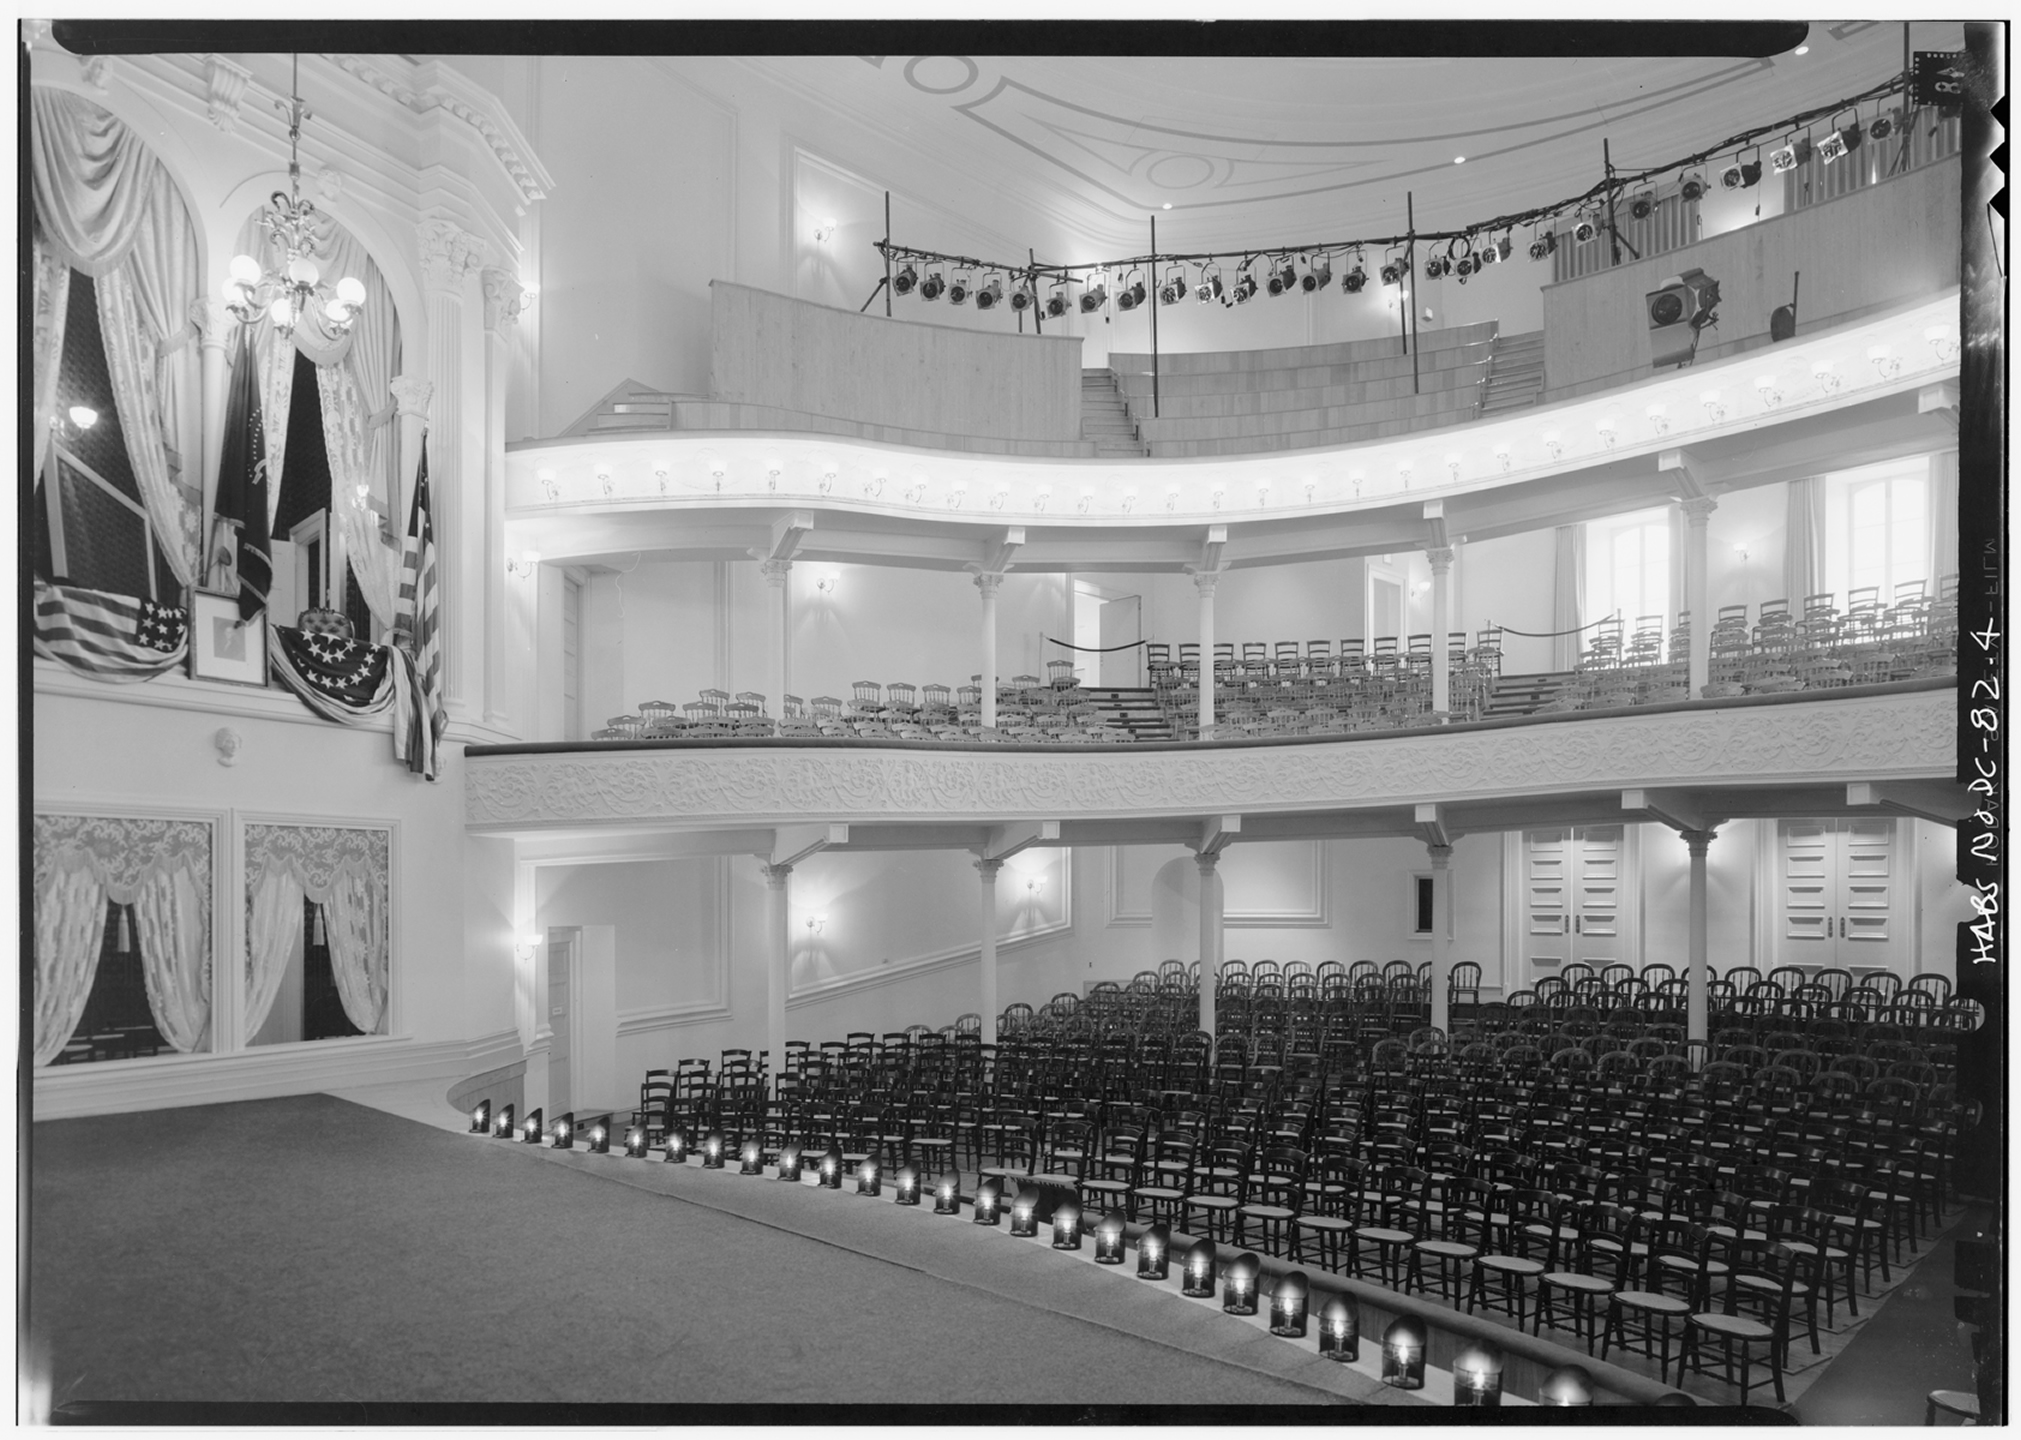 Black and white image from the Ford's Theatre stage looking out into the 1968 renovated Ford's Theatre audience. Image shows individual wooden chairs in the the audience seating areas and the Presidential Box above the stage. The Box is decorated similar to when Lincoln and his guests attended the theatre in April 1865.